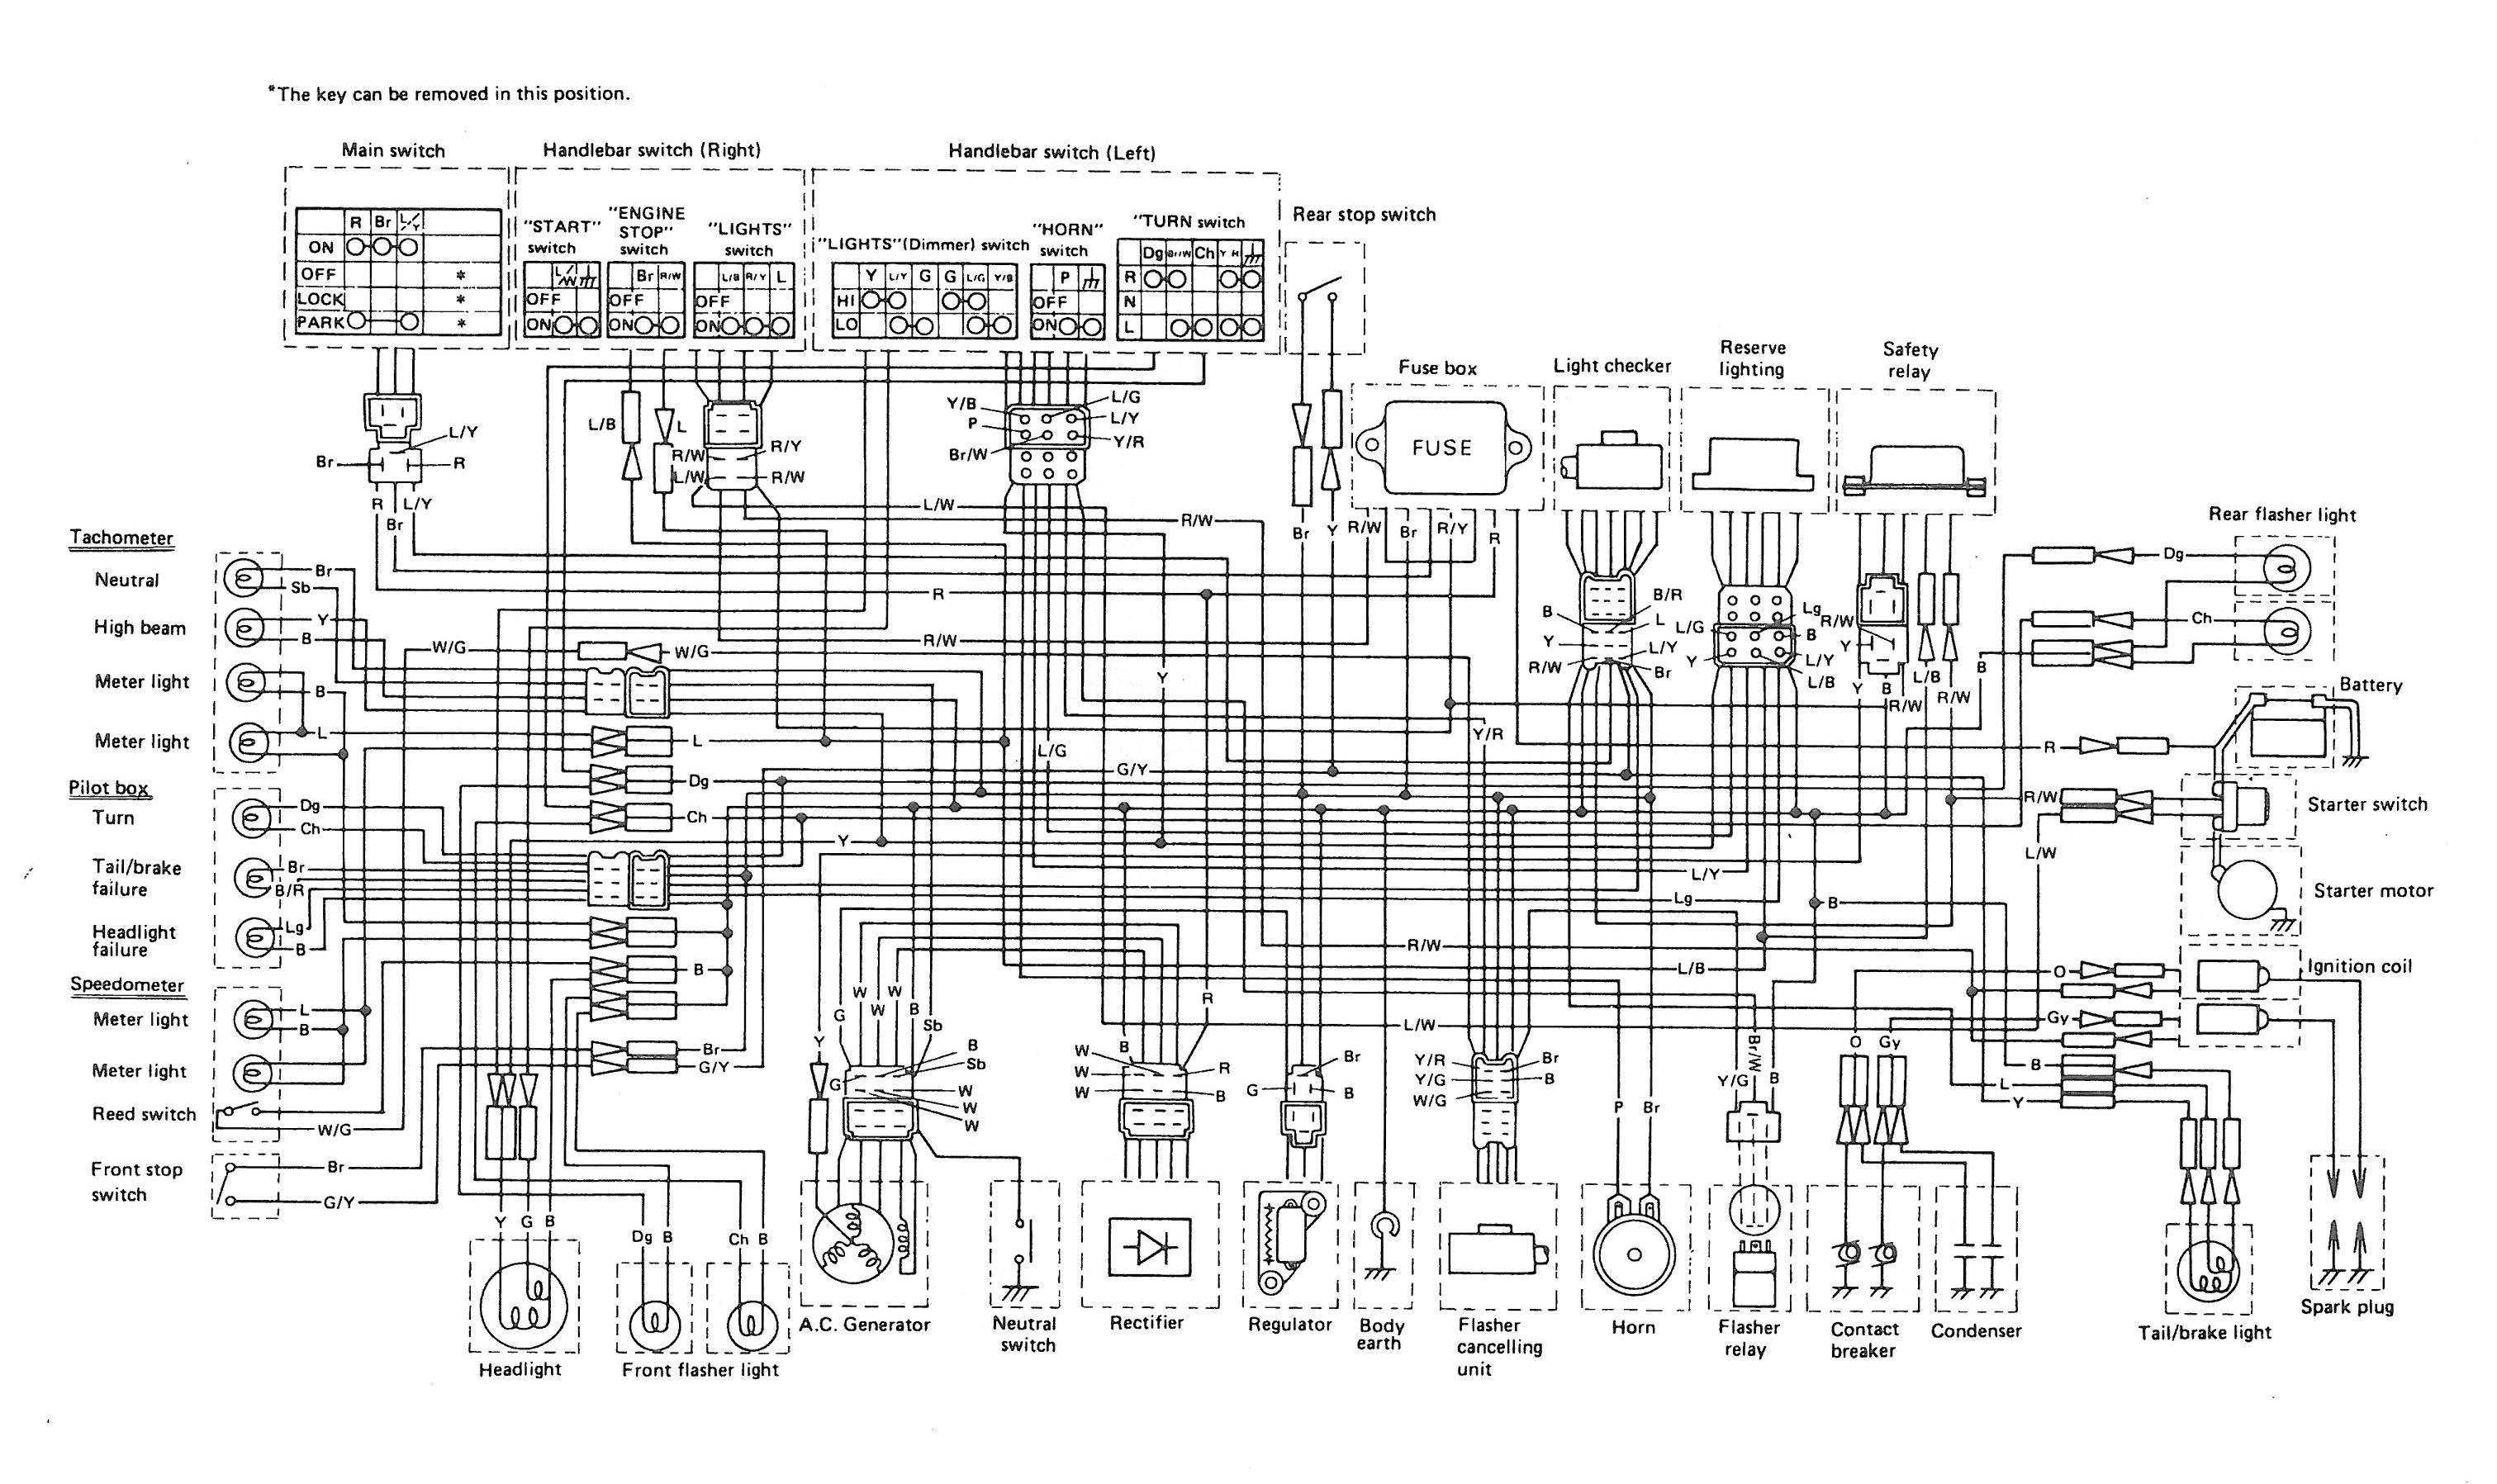 Yamaha Engine Schematics Wiring Diagrams G1 Diagram Electric 78 Dt 100 Library Rh 17 Codingcommunity De Schematic